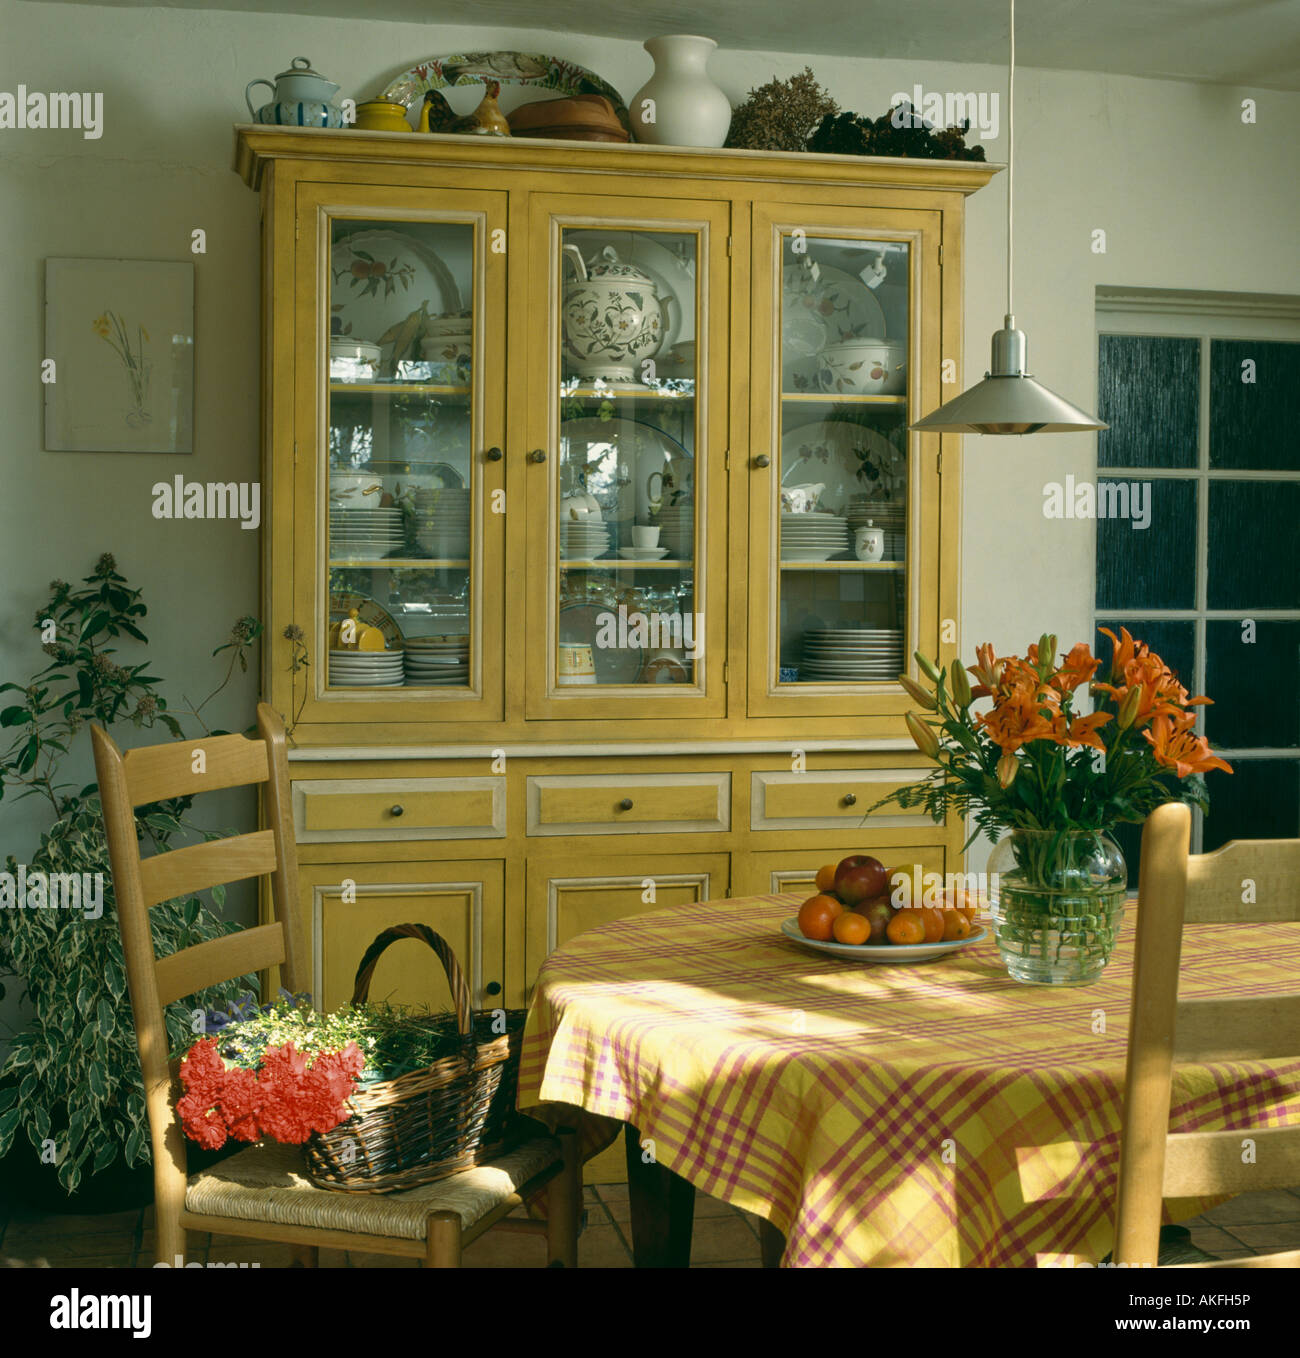 Painted Yellow Dresser With Glass Doors In Dining Room Checked Tablecloth